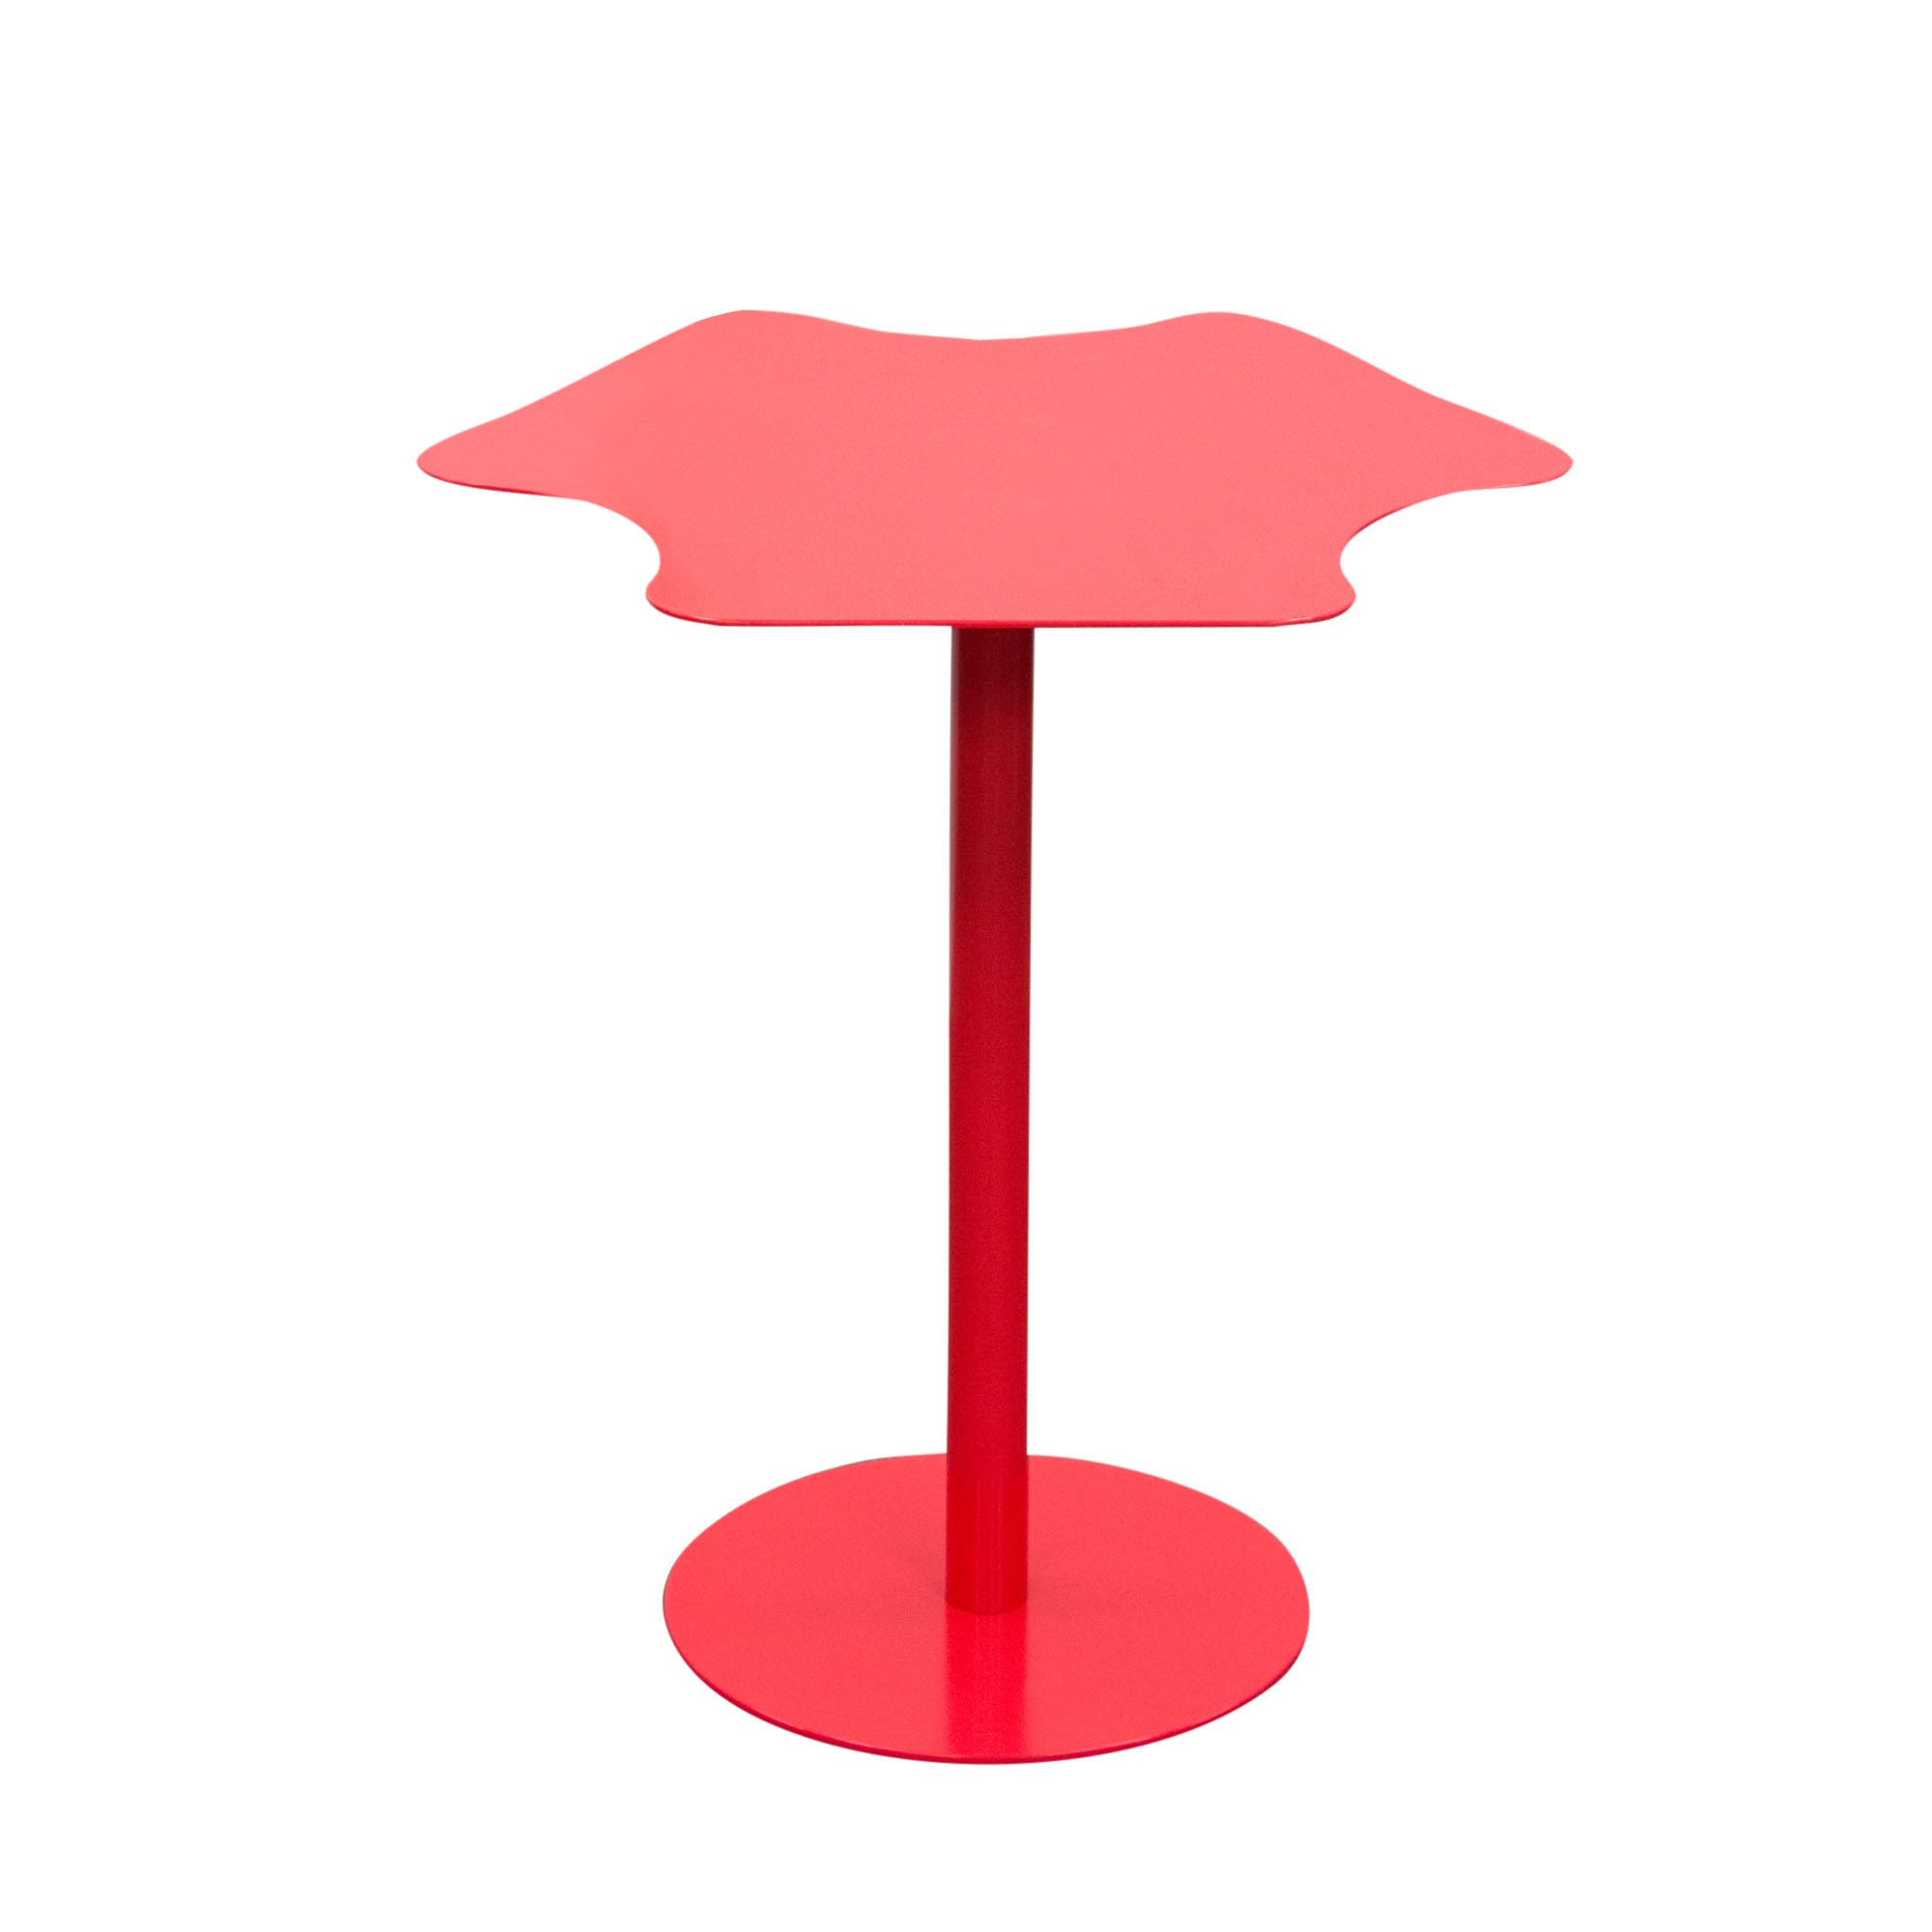 peta powder coated metal accent table matte red finish diamond petaetre pink more views product description the trestle base dale tiffany lamps antique roadshow teal coffee pier